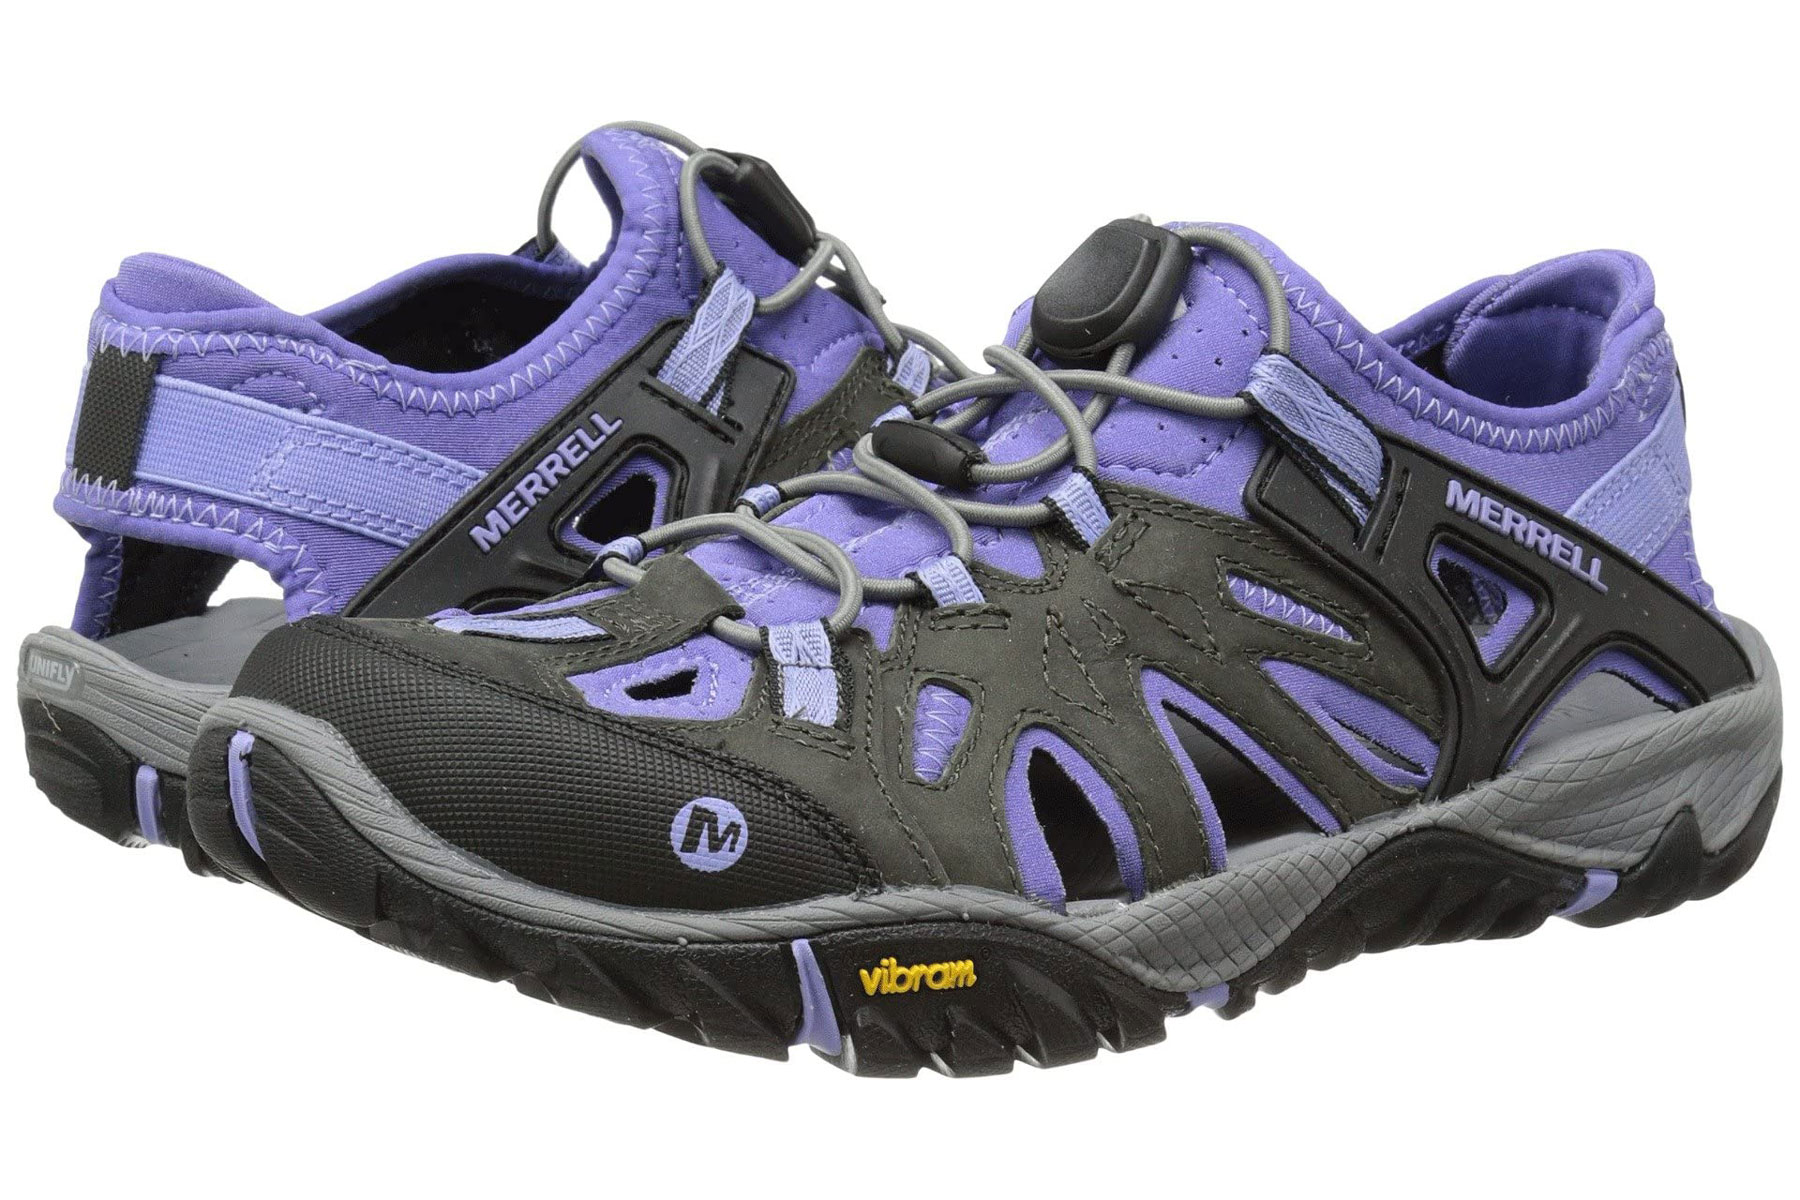 Black and purple water shoes